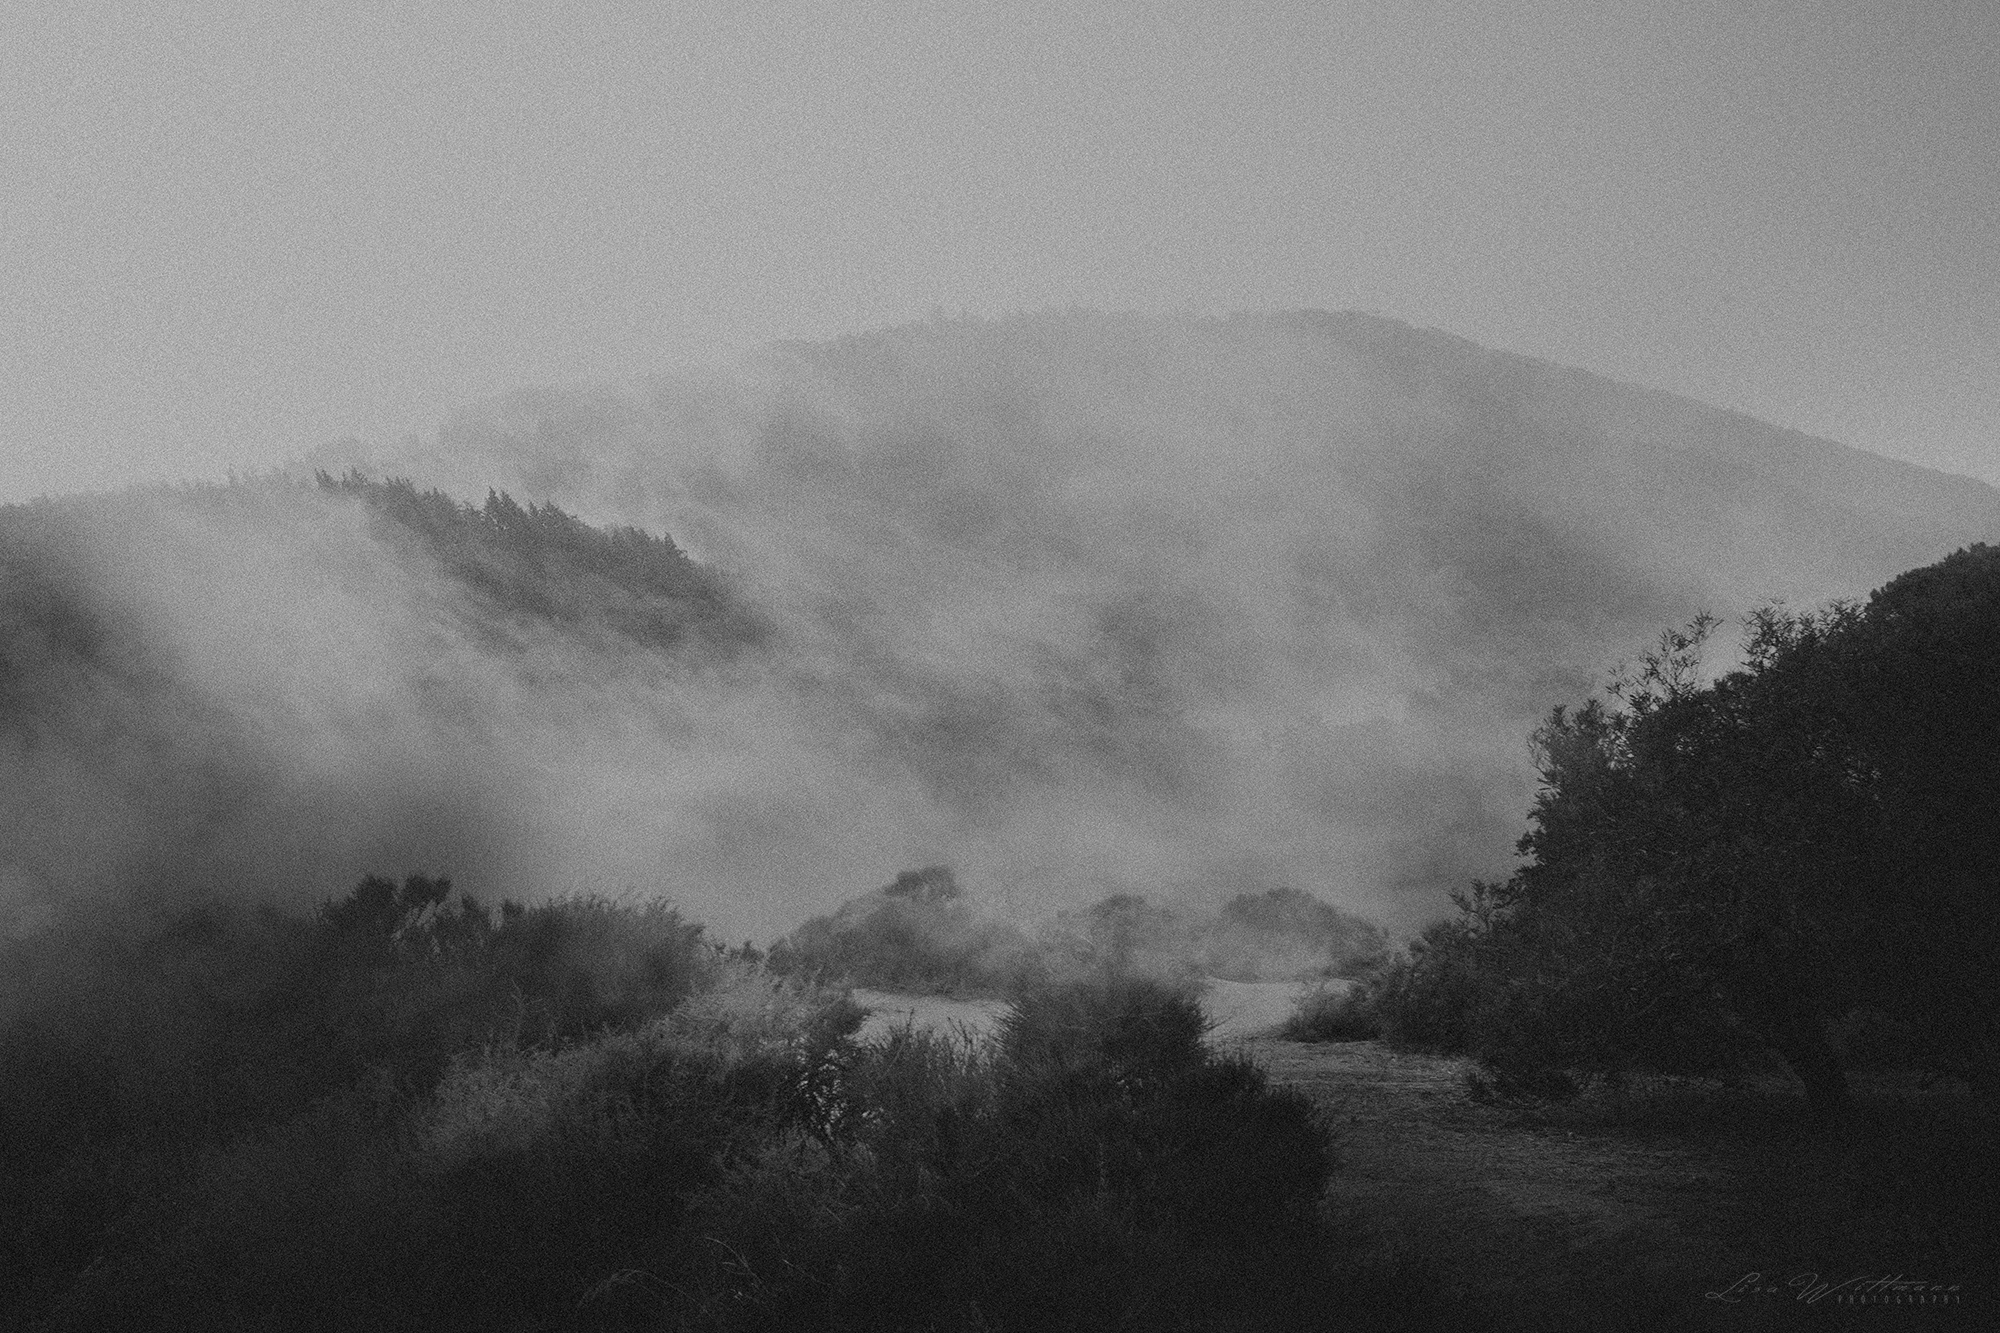 lisa_wittmann_photography_nature_forest_fog_tree_rain_epic_dream_beautiful_canon_rain_light_black_white_roots_mountain_sky_silent_portugal_hiking_travel_analogue